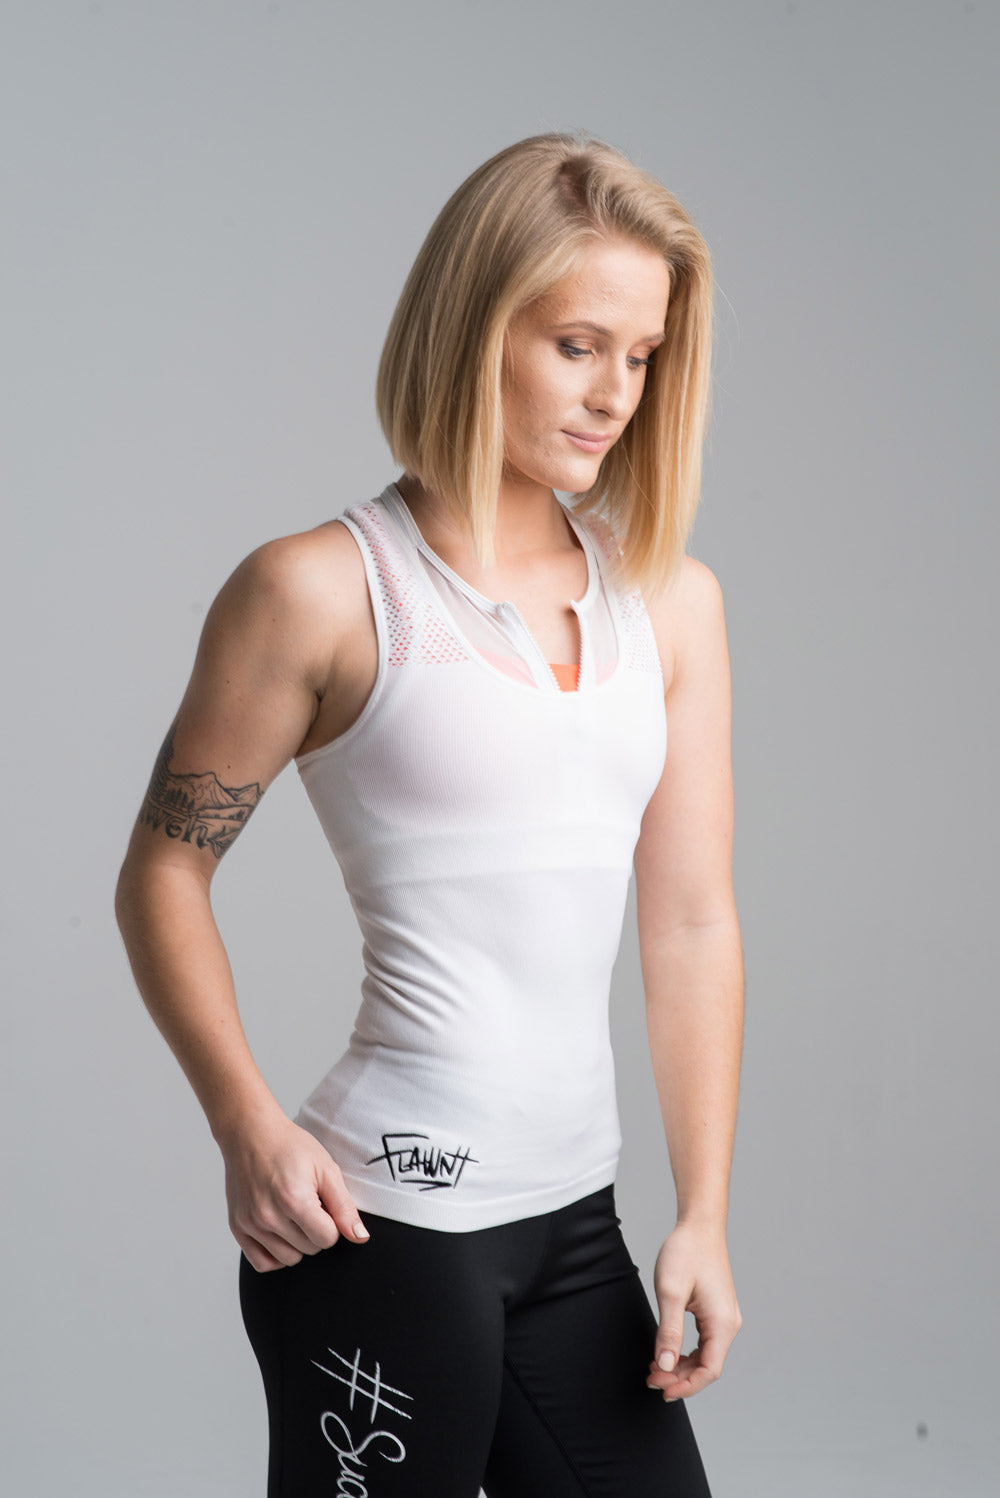 White Flawnt Clothing Mesh Singlet